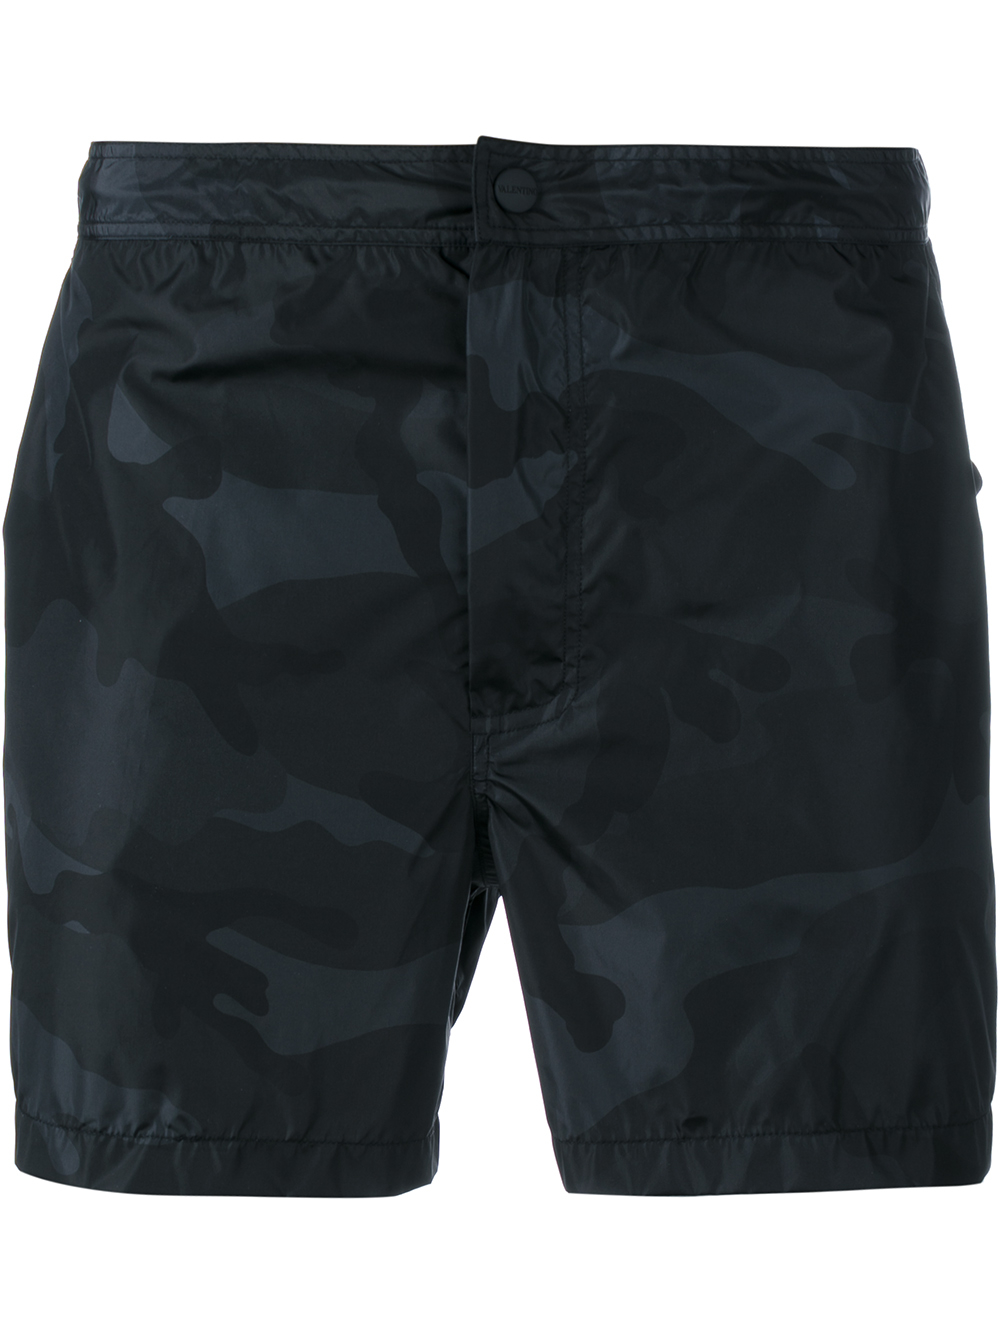 Lyst - Valentino Camouflage Swimming Shorts in Black for Men c742726cba4